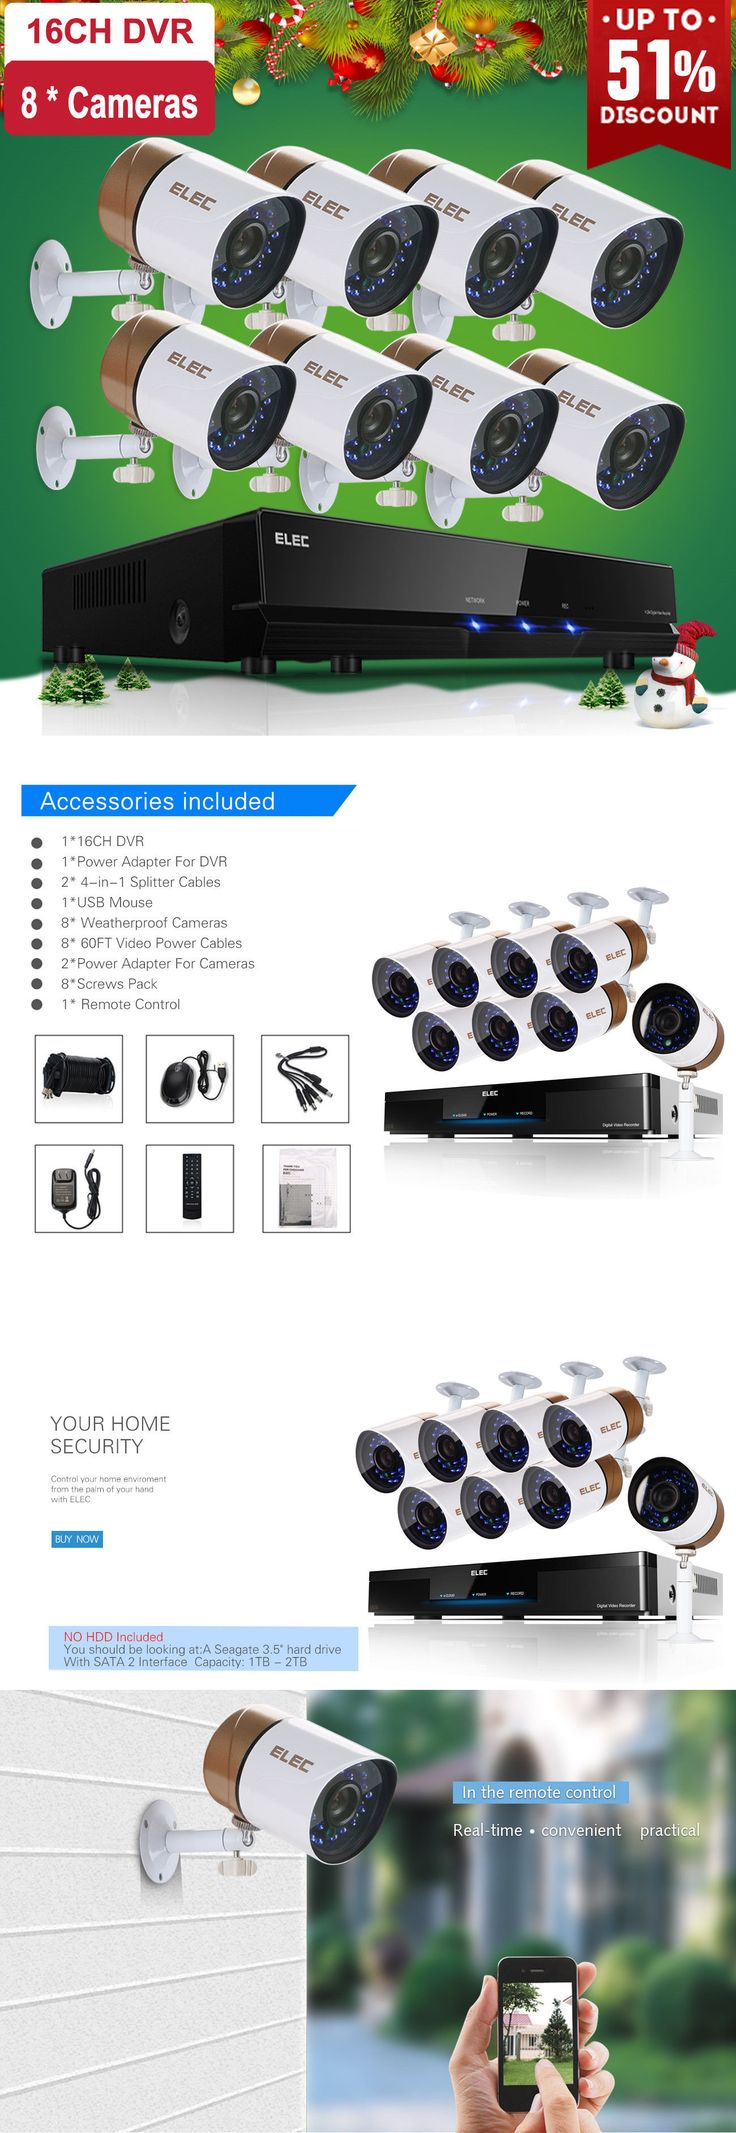 Surveillance Security Systems: Elec 16Ch 1500Tvl 960H Hdmi Dvr Cctv Ir-Cut Outdoor Home Security Camera System -> BUY IT NOW ONLY: $219.99 on eBay!